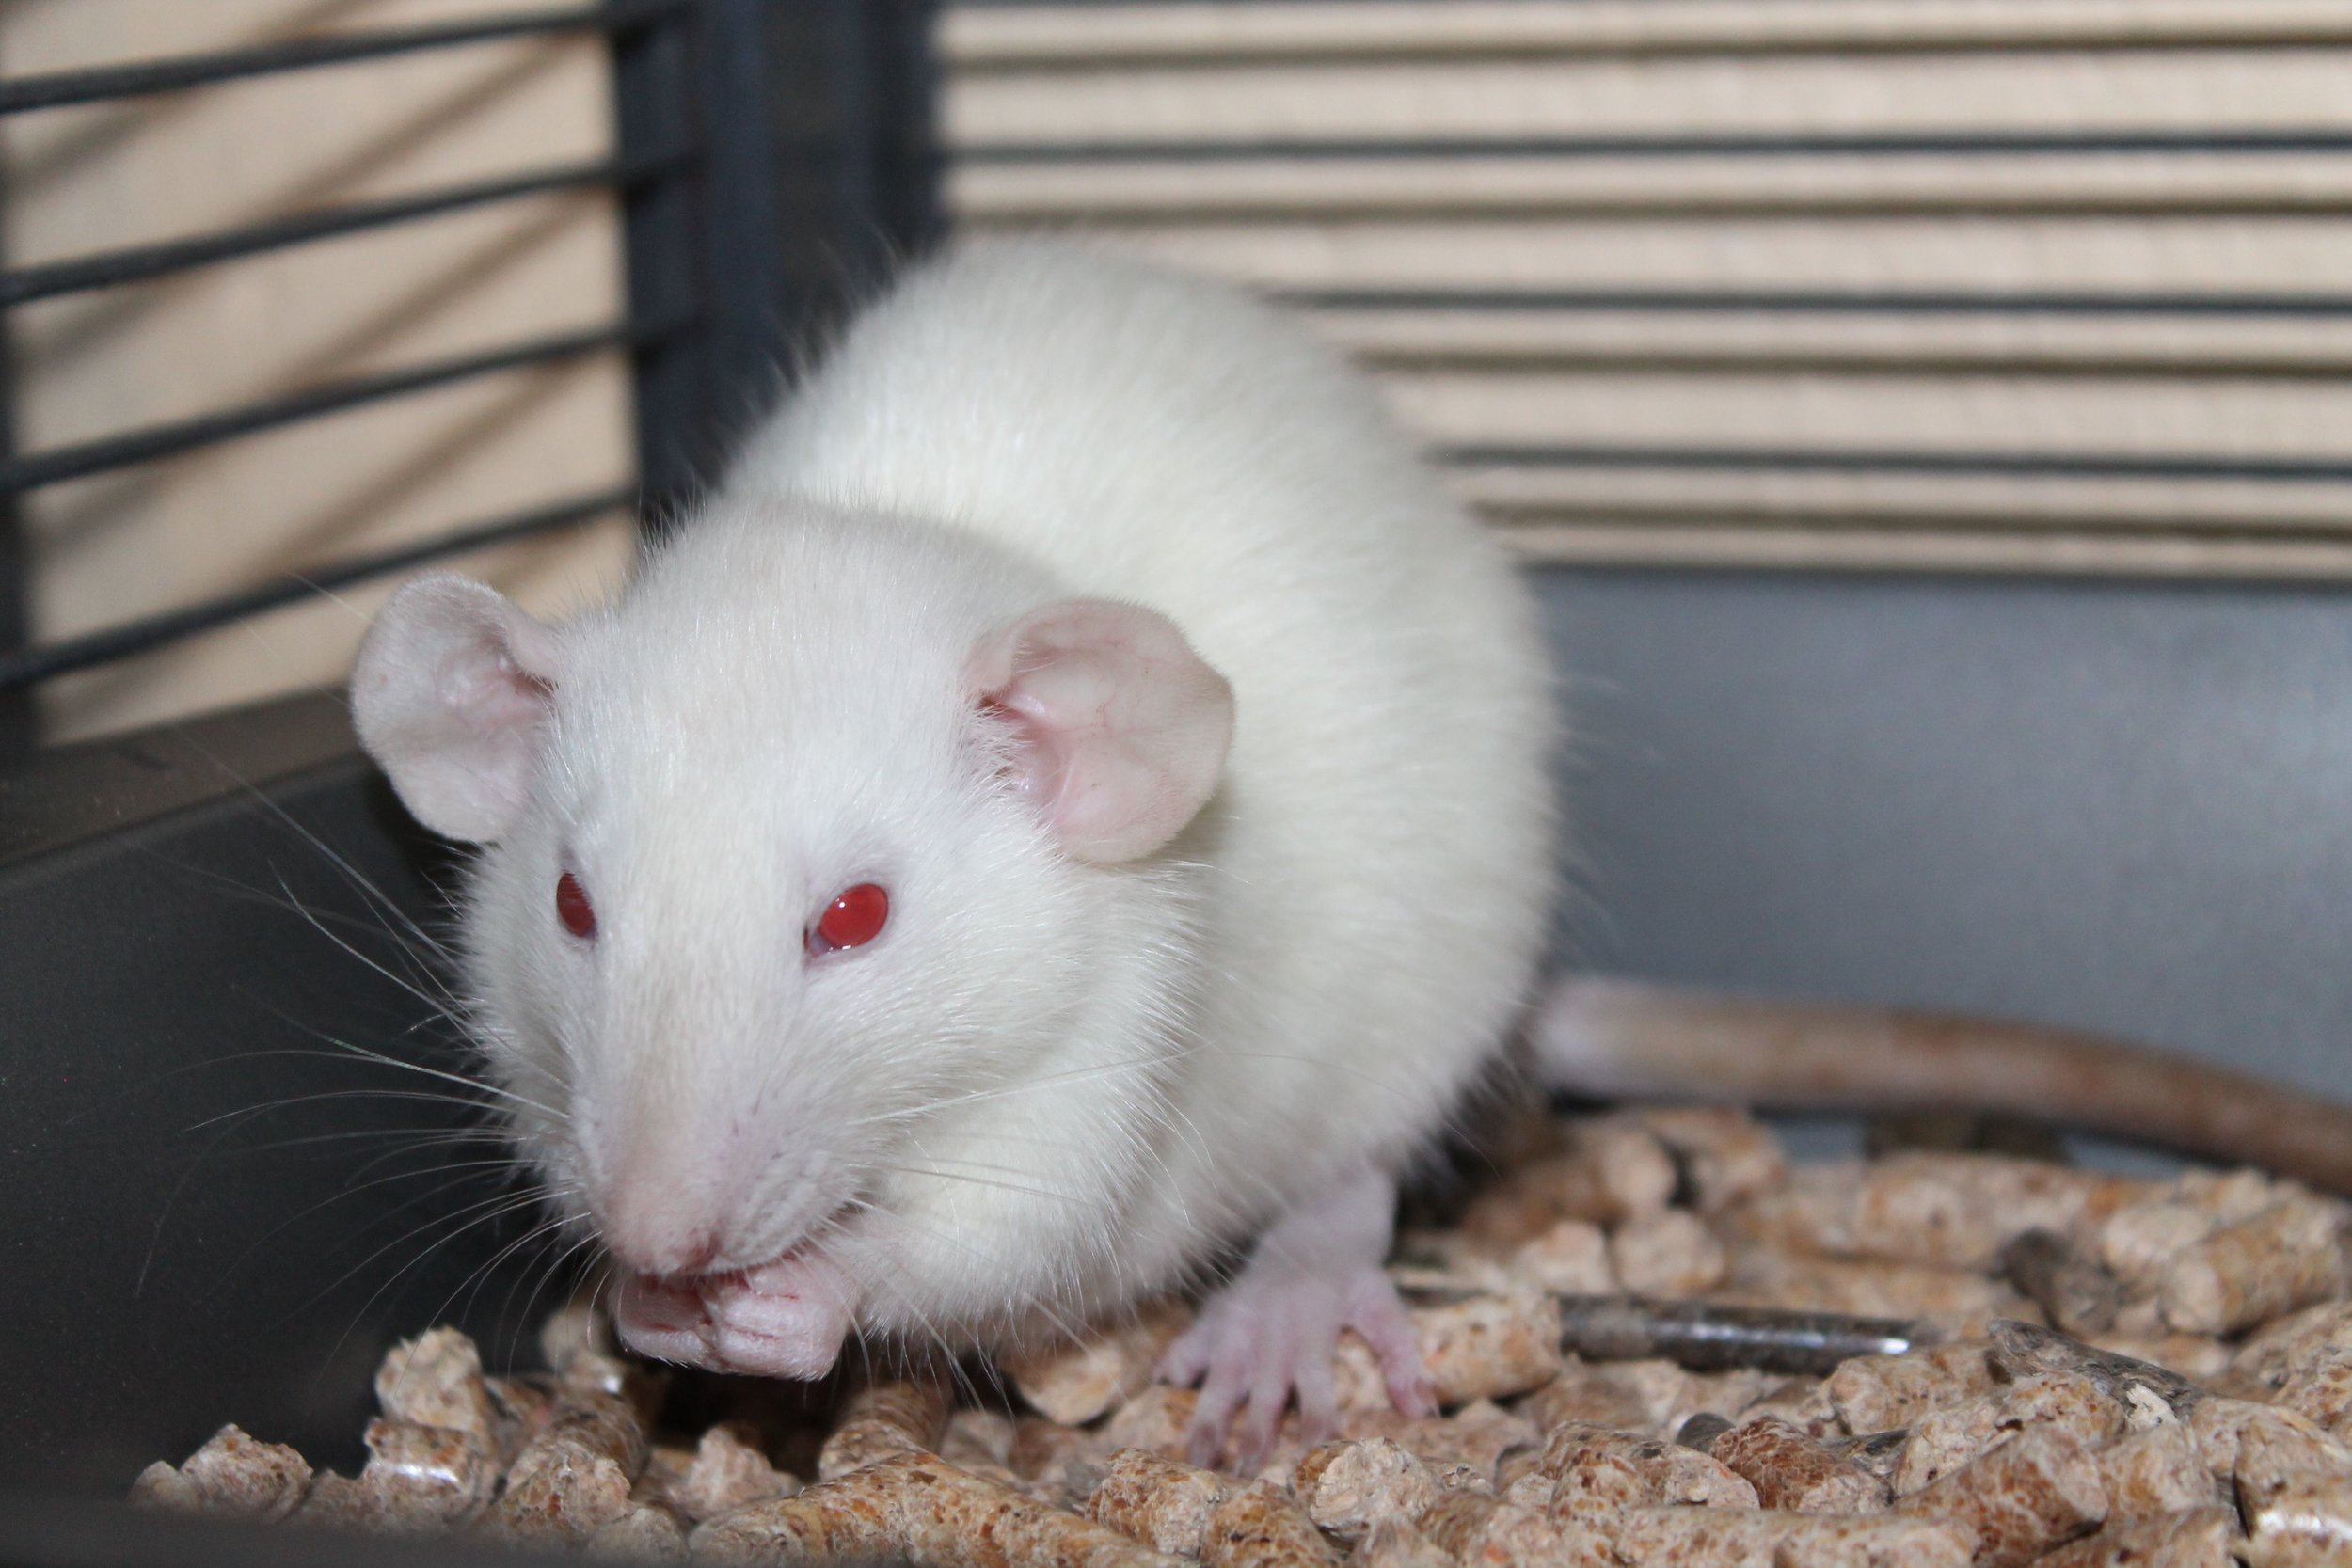 Ross is a sweet and friendly little fellow. He is a Dumbo rat and just a baby. After a rough start to life he is looking for a loving forever home. He is looking forward to spending lost of time with his human companion(s).